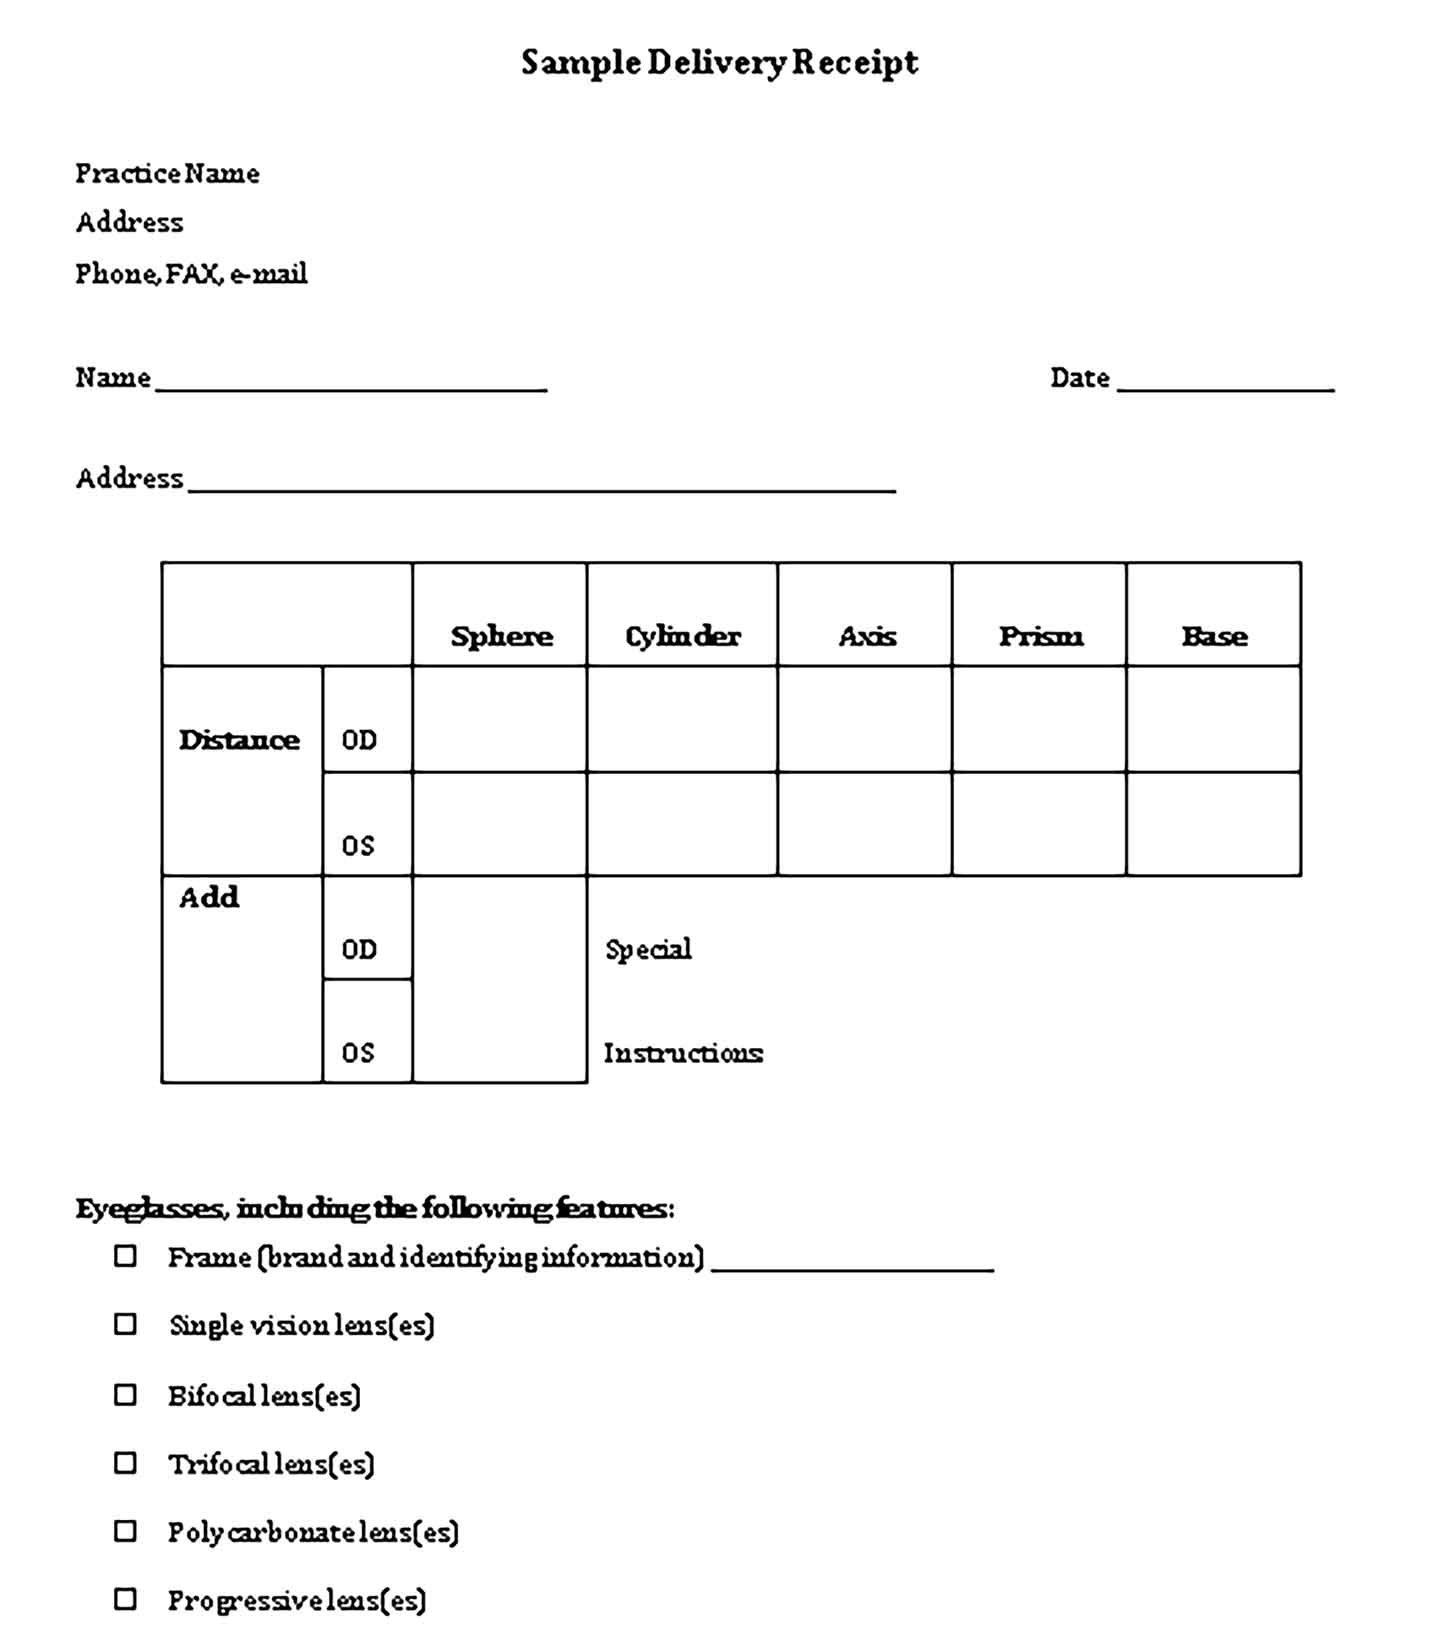 Sample Glasses Delivery Receipt Word 1 Templates